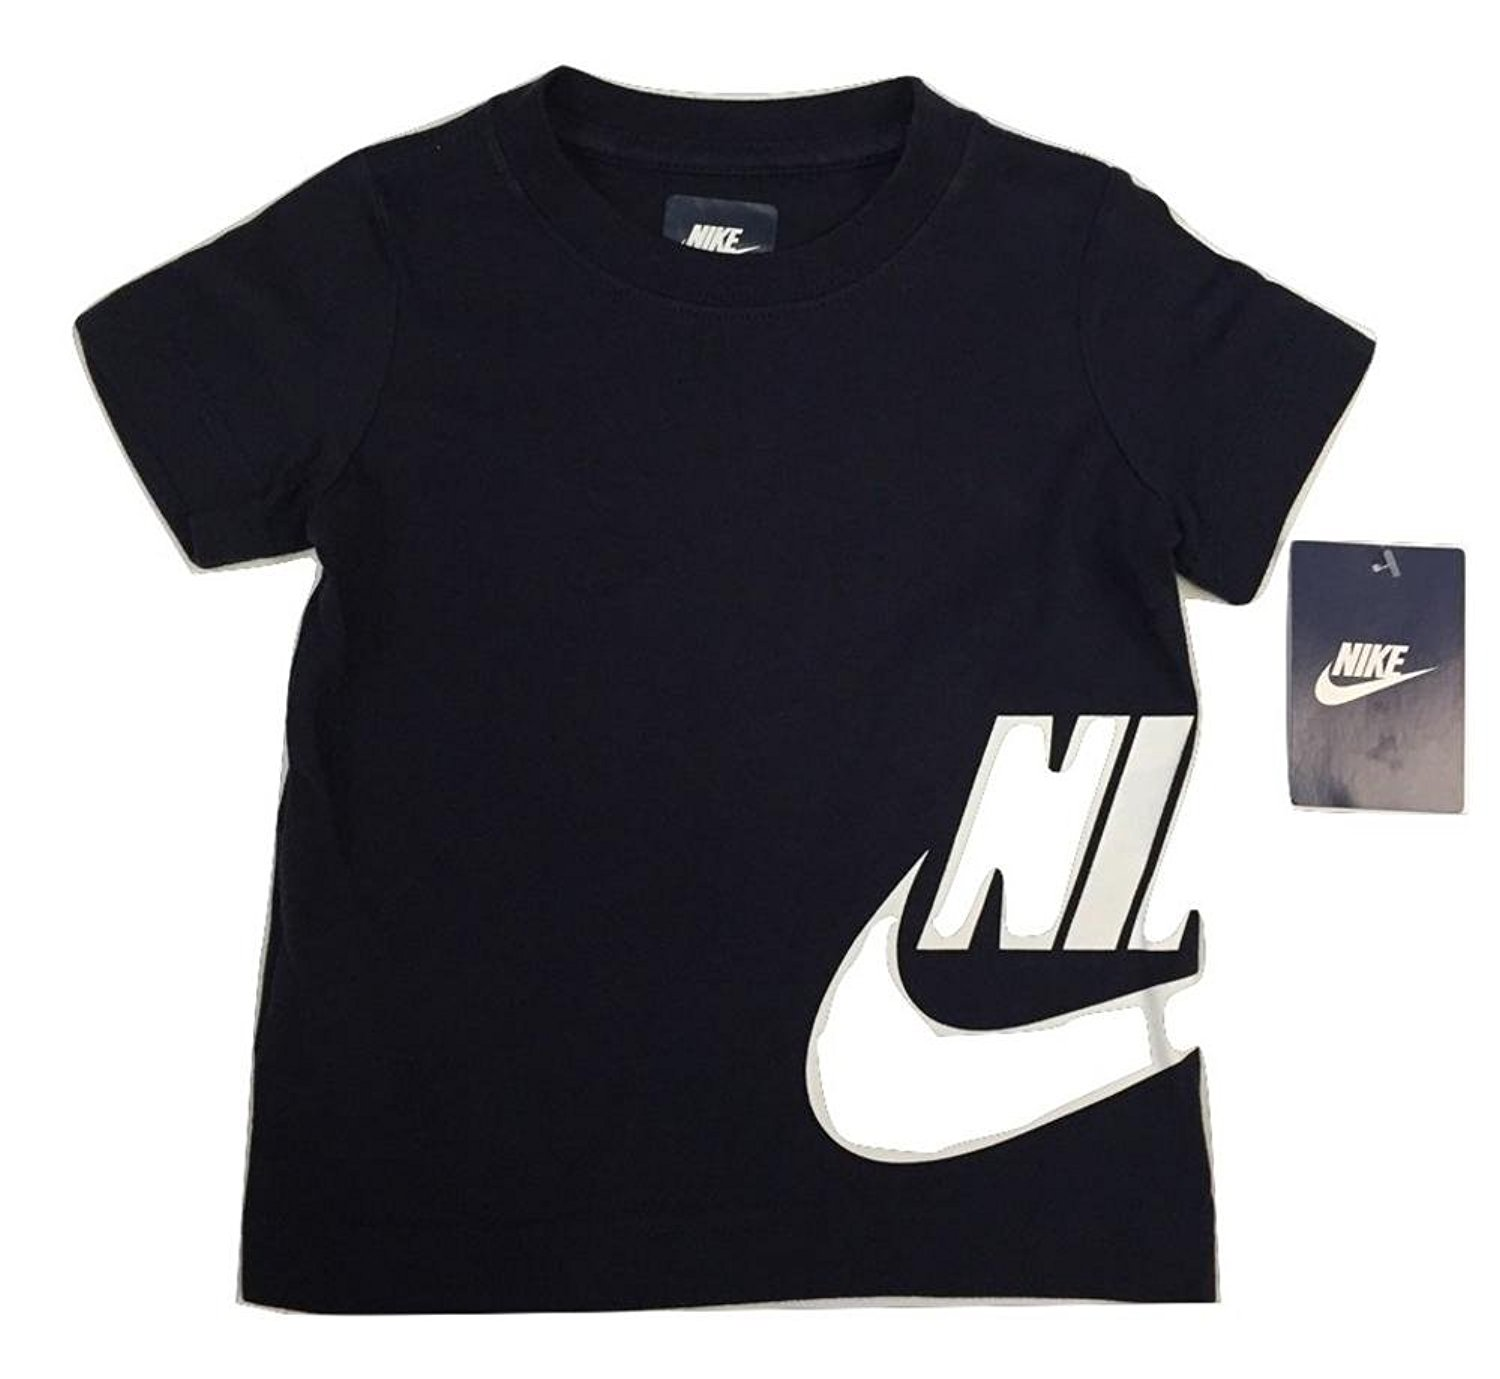 1e8a2263 Get Quotations · Nike Toddler Boys Athletic Dri-Fit Tee Shirt- Obsidian